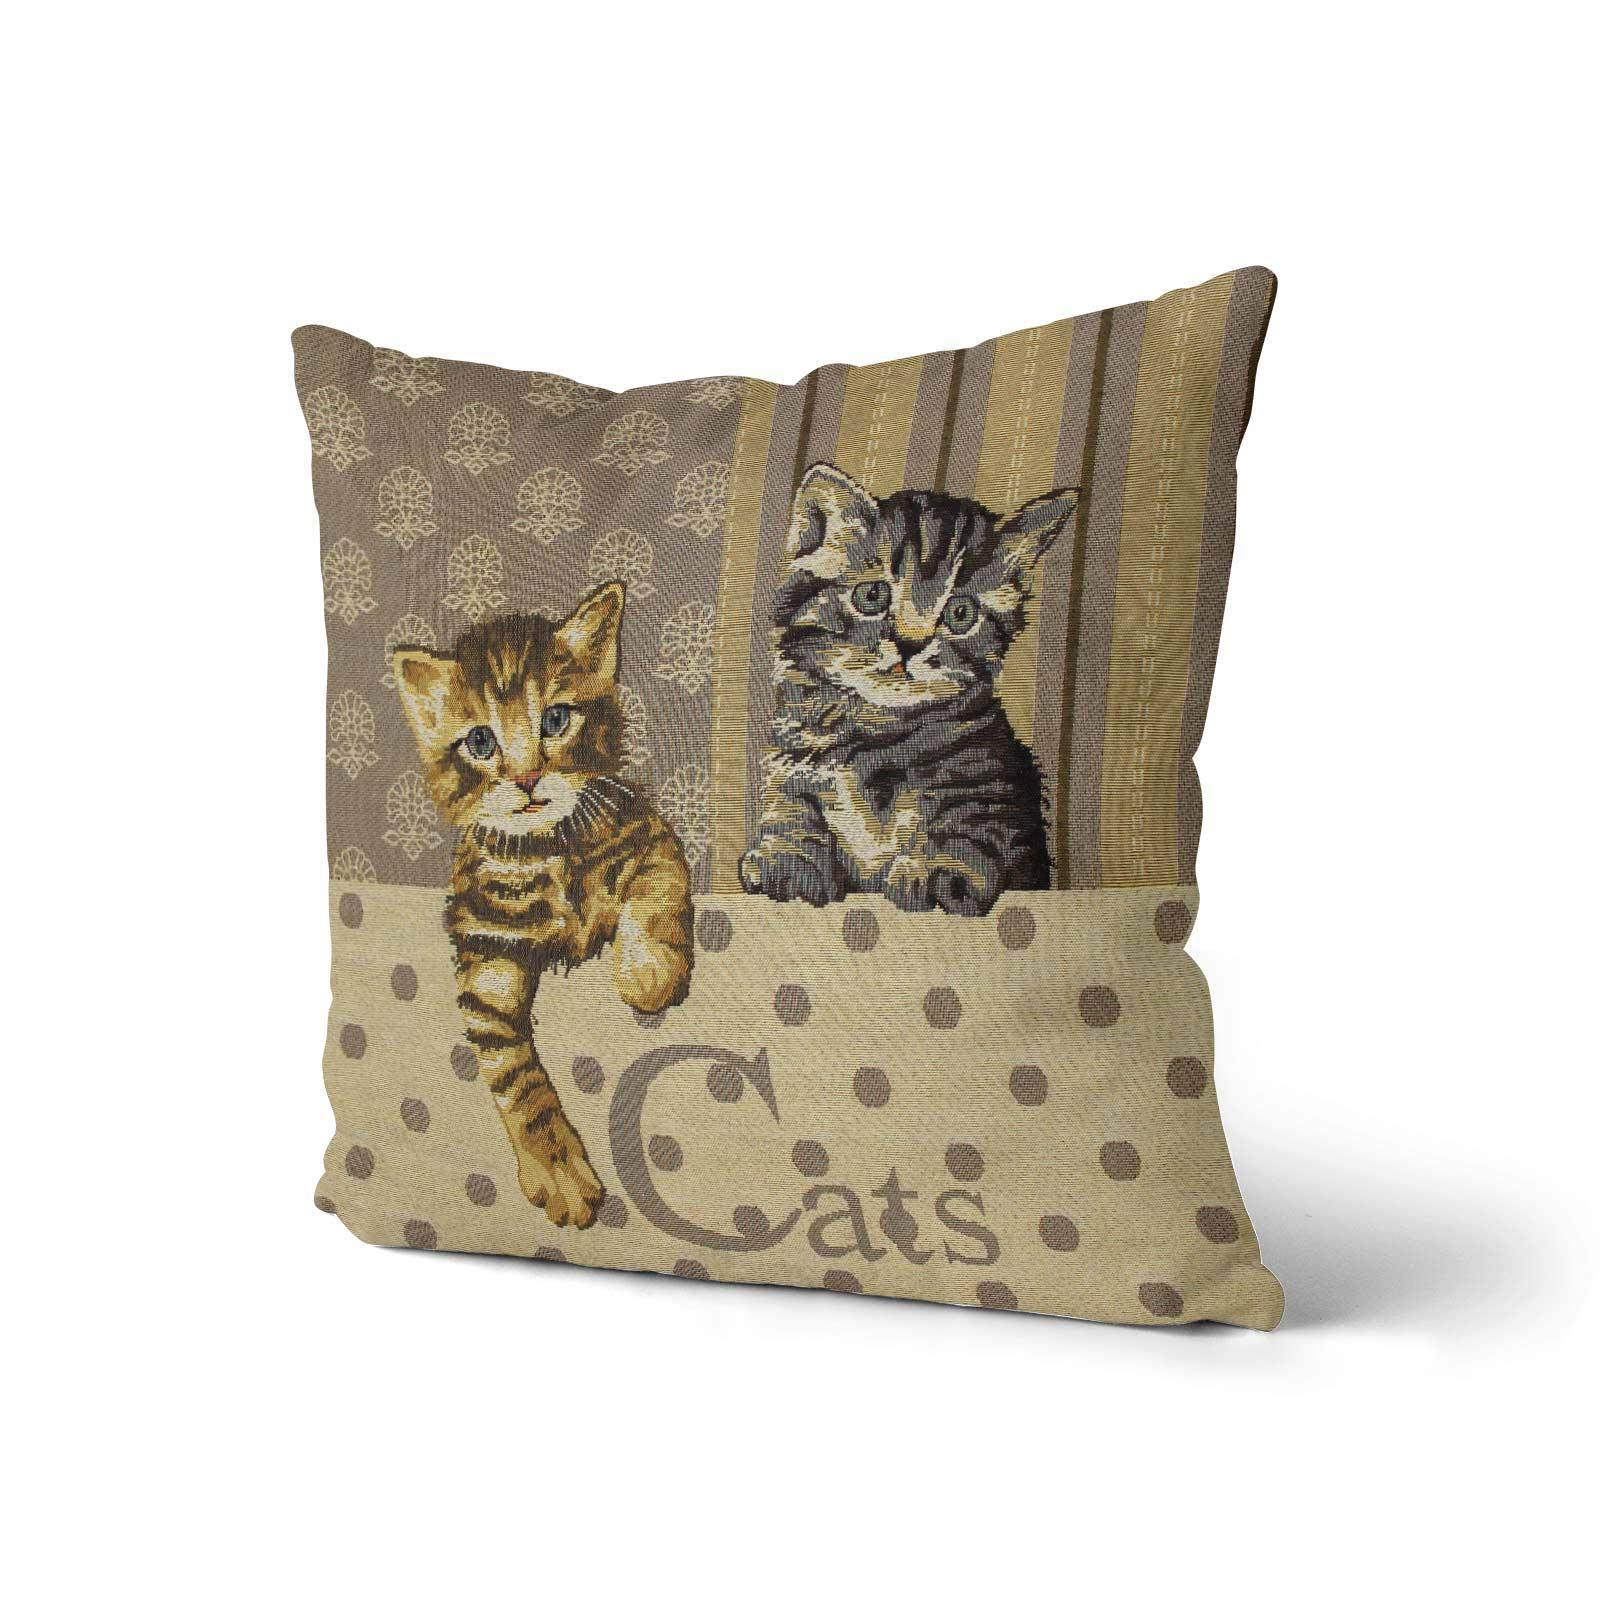 Tapestry-Cushion-Covers-Vintage-Pillow-Cover-Collection-18-034-45cm-Filled-Cushions thumbnail 19